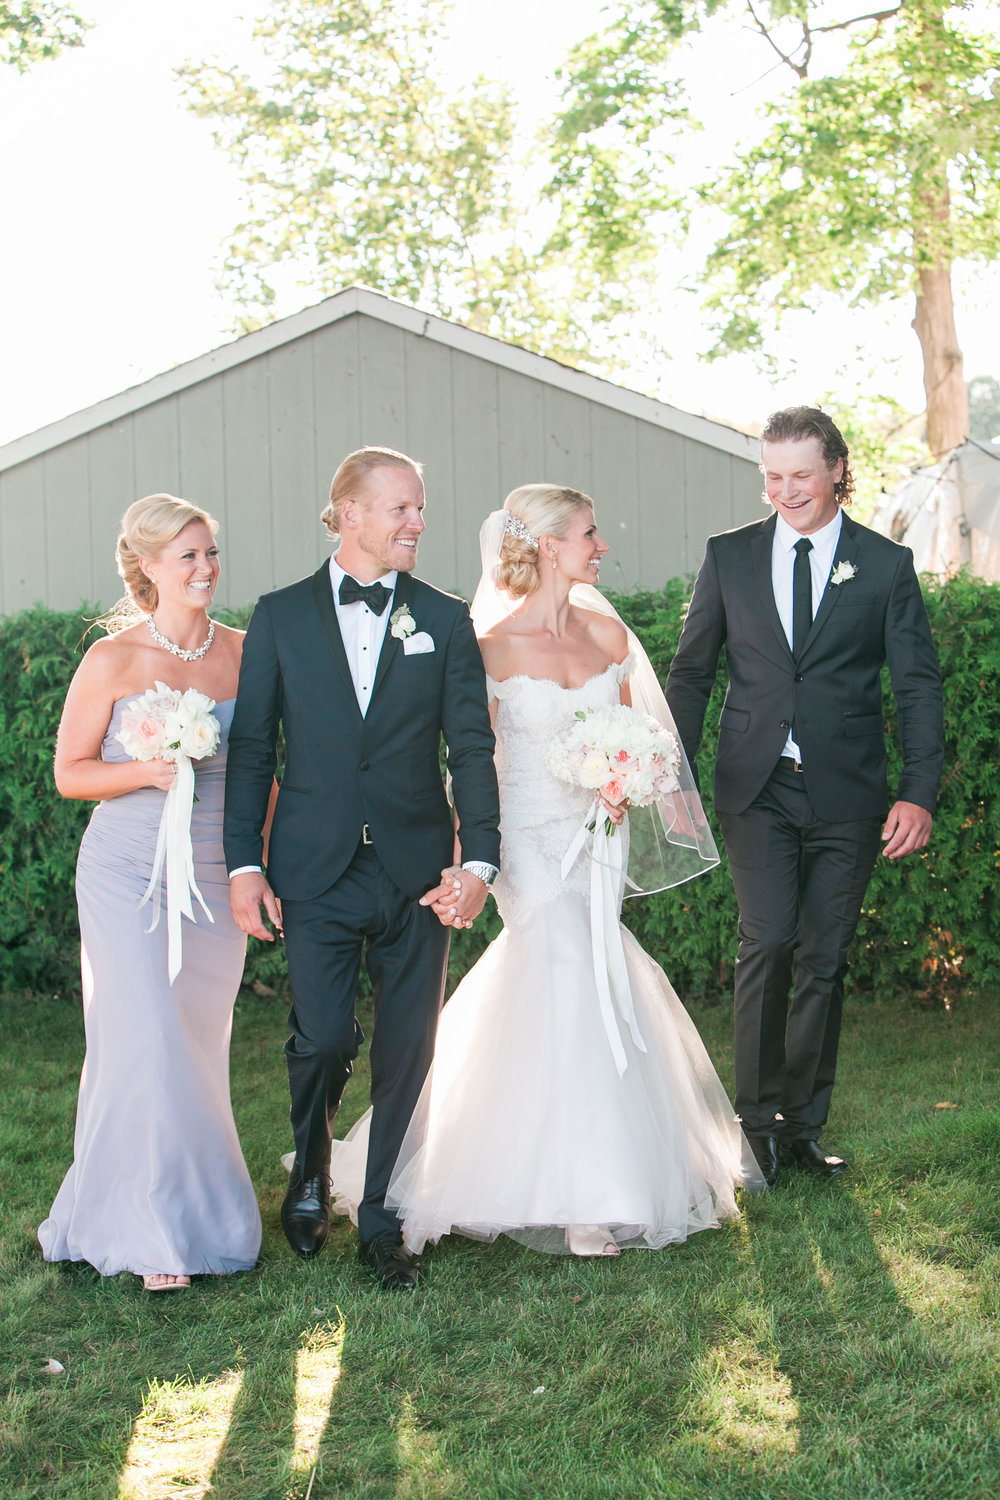 Bridal party photos in Muskoka